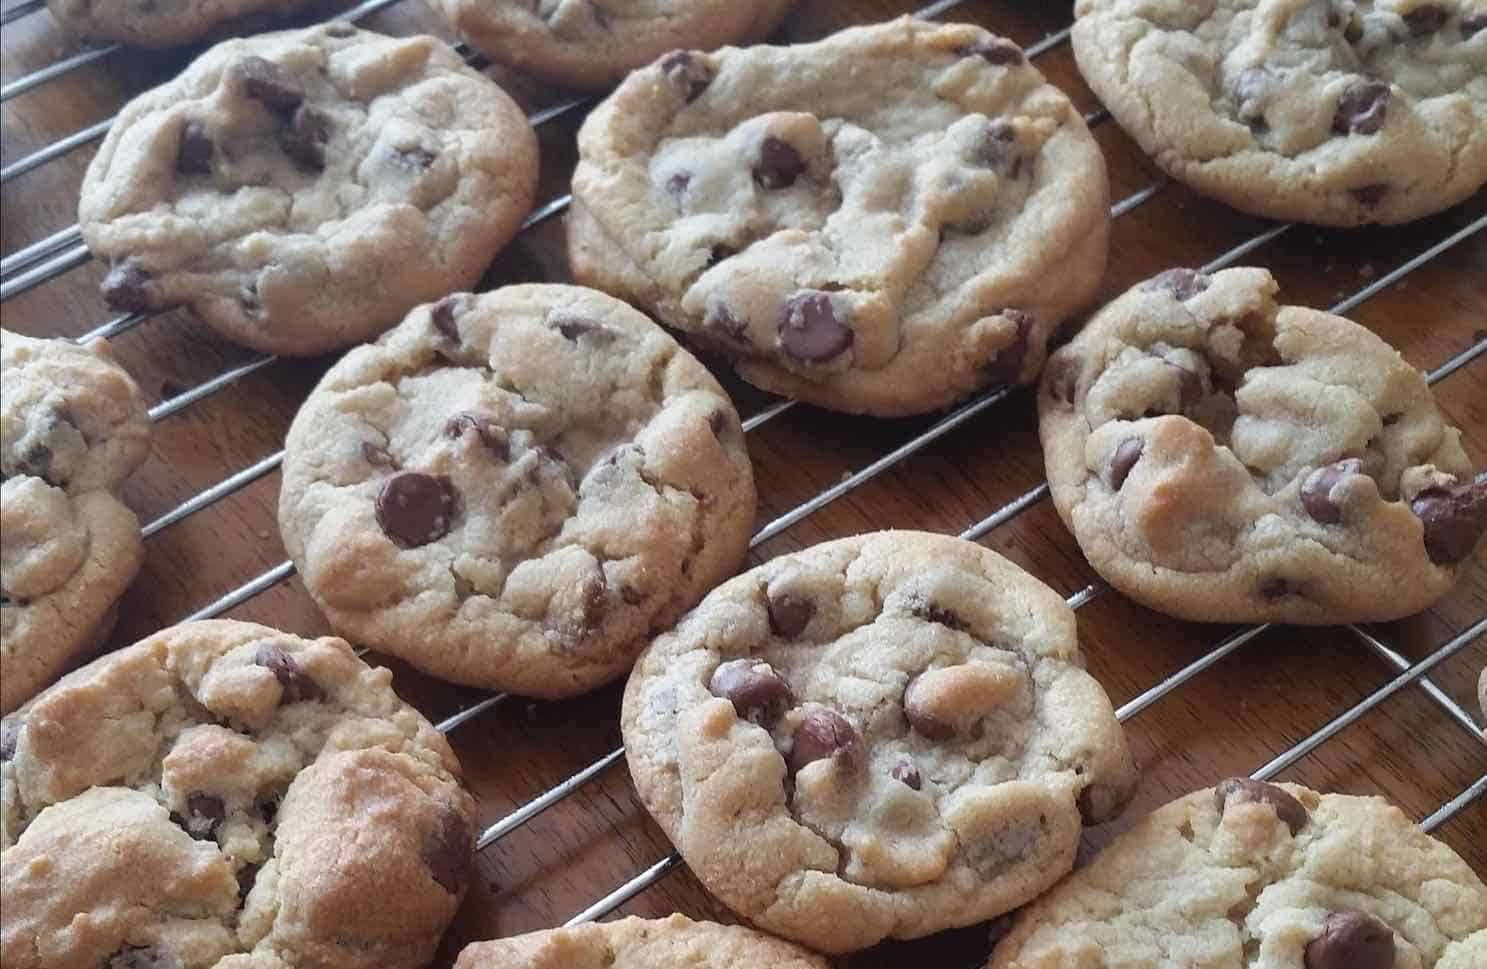 Chocolate Chip Cookies Allrecipes  Rolled Chocolate Chip Cookies Recipe by DoughEZ